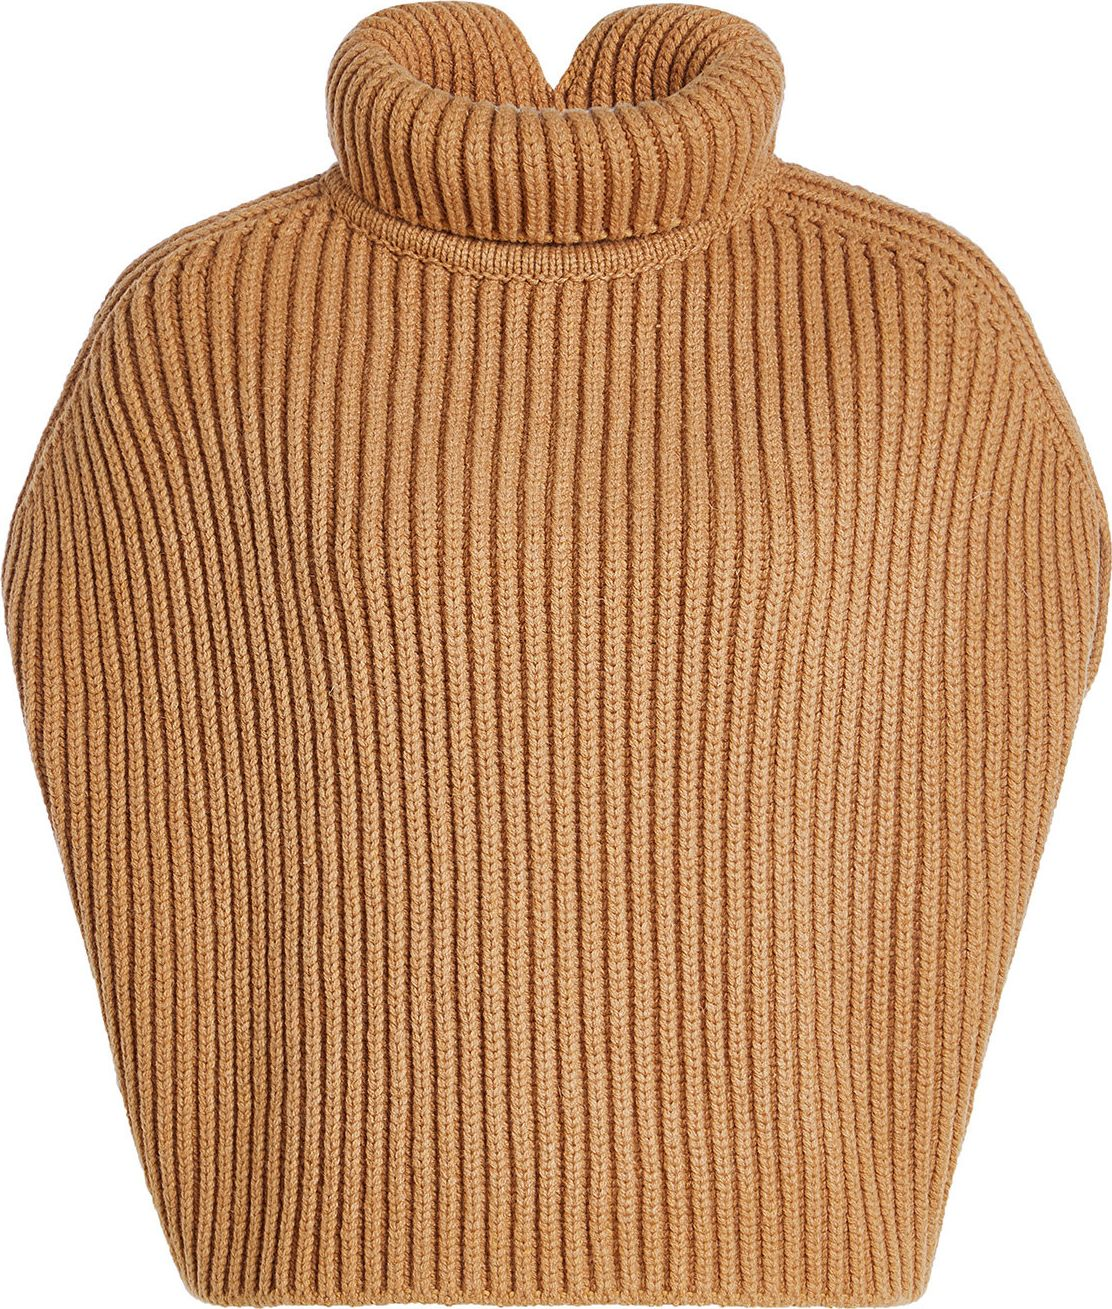 Jil Sander - Turtleneck Pullover with Fleece Wool